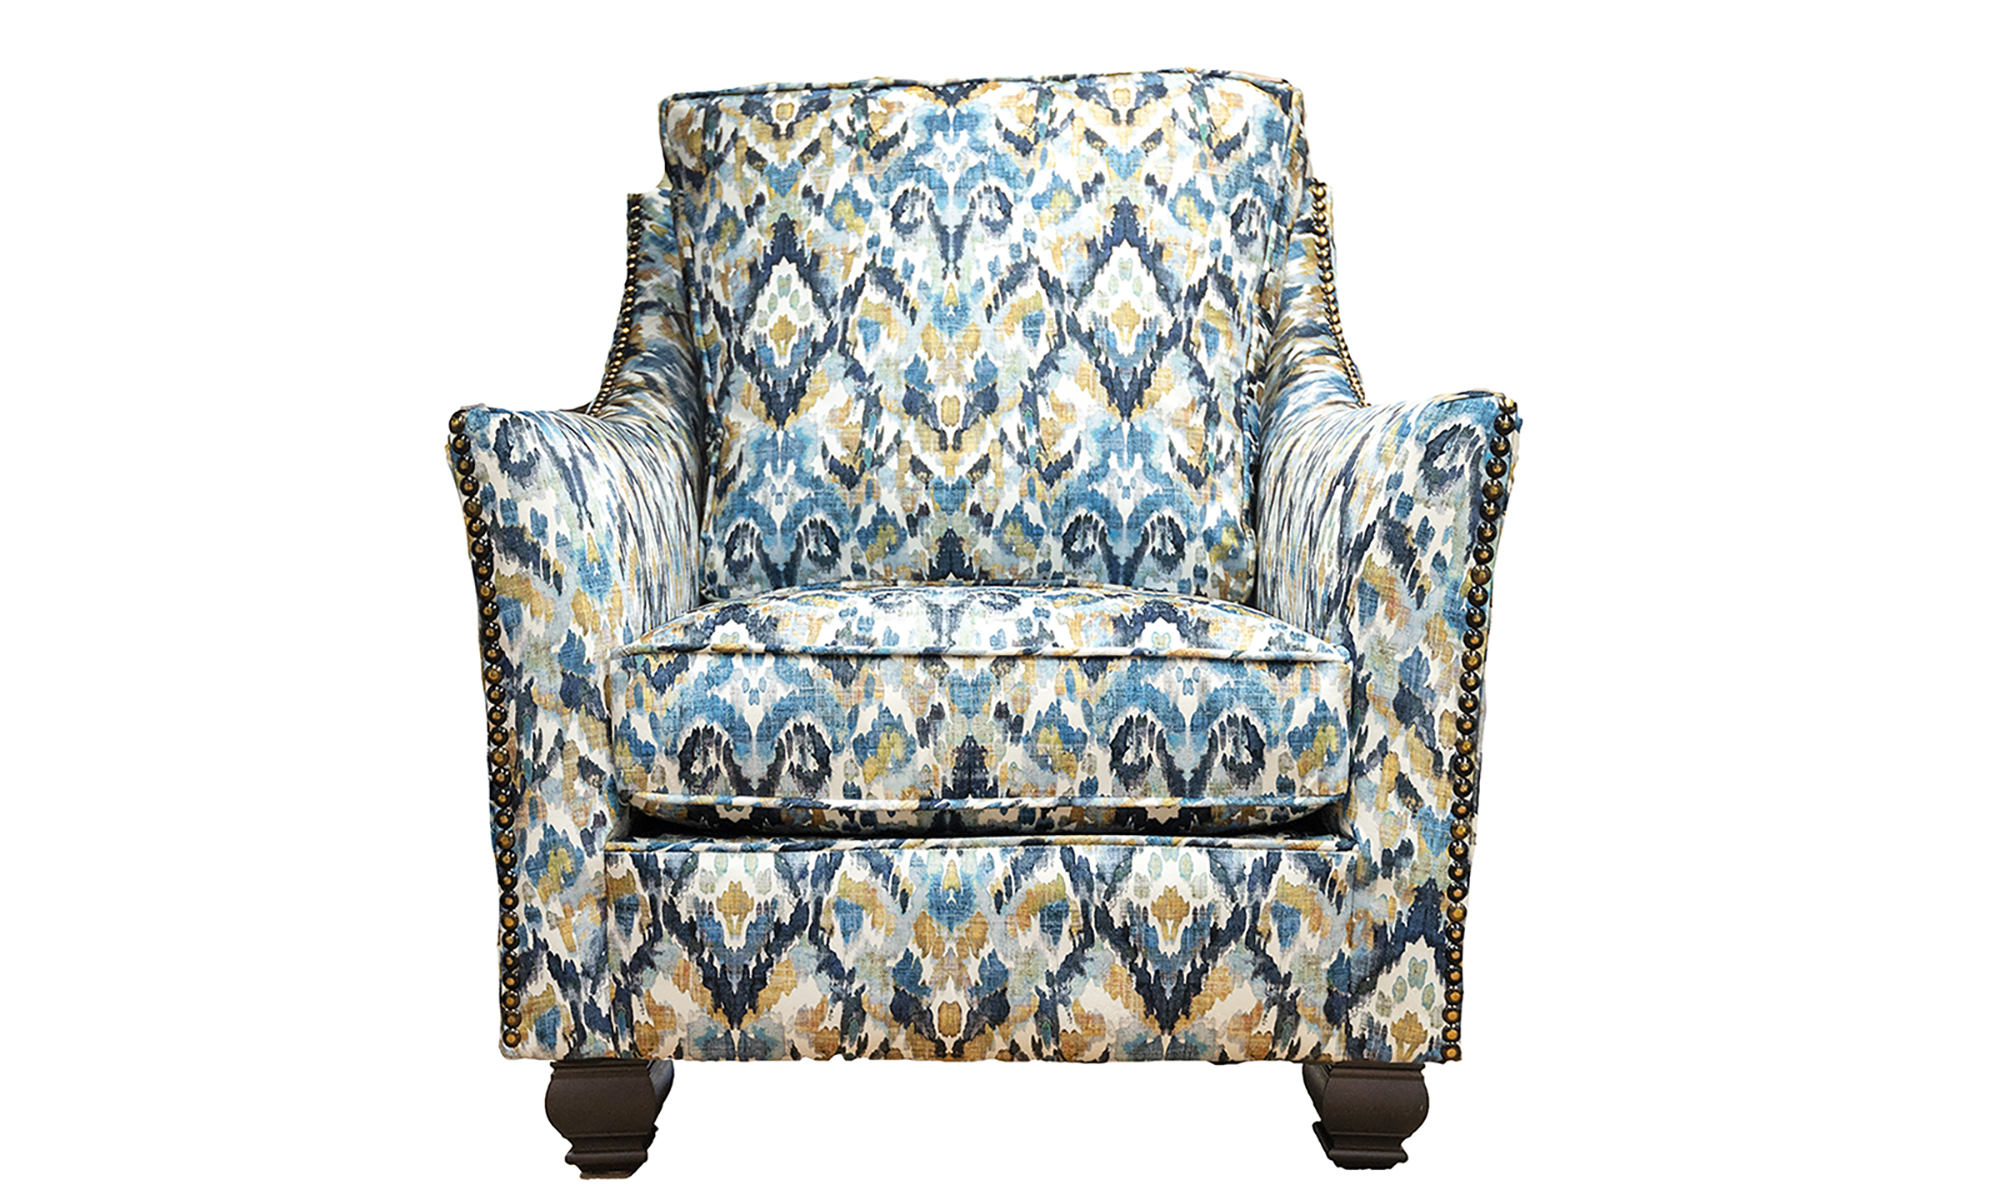 Grenoble Chair in Monet Winter, Platinum Collection Fabric